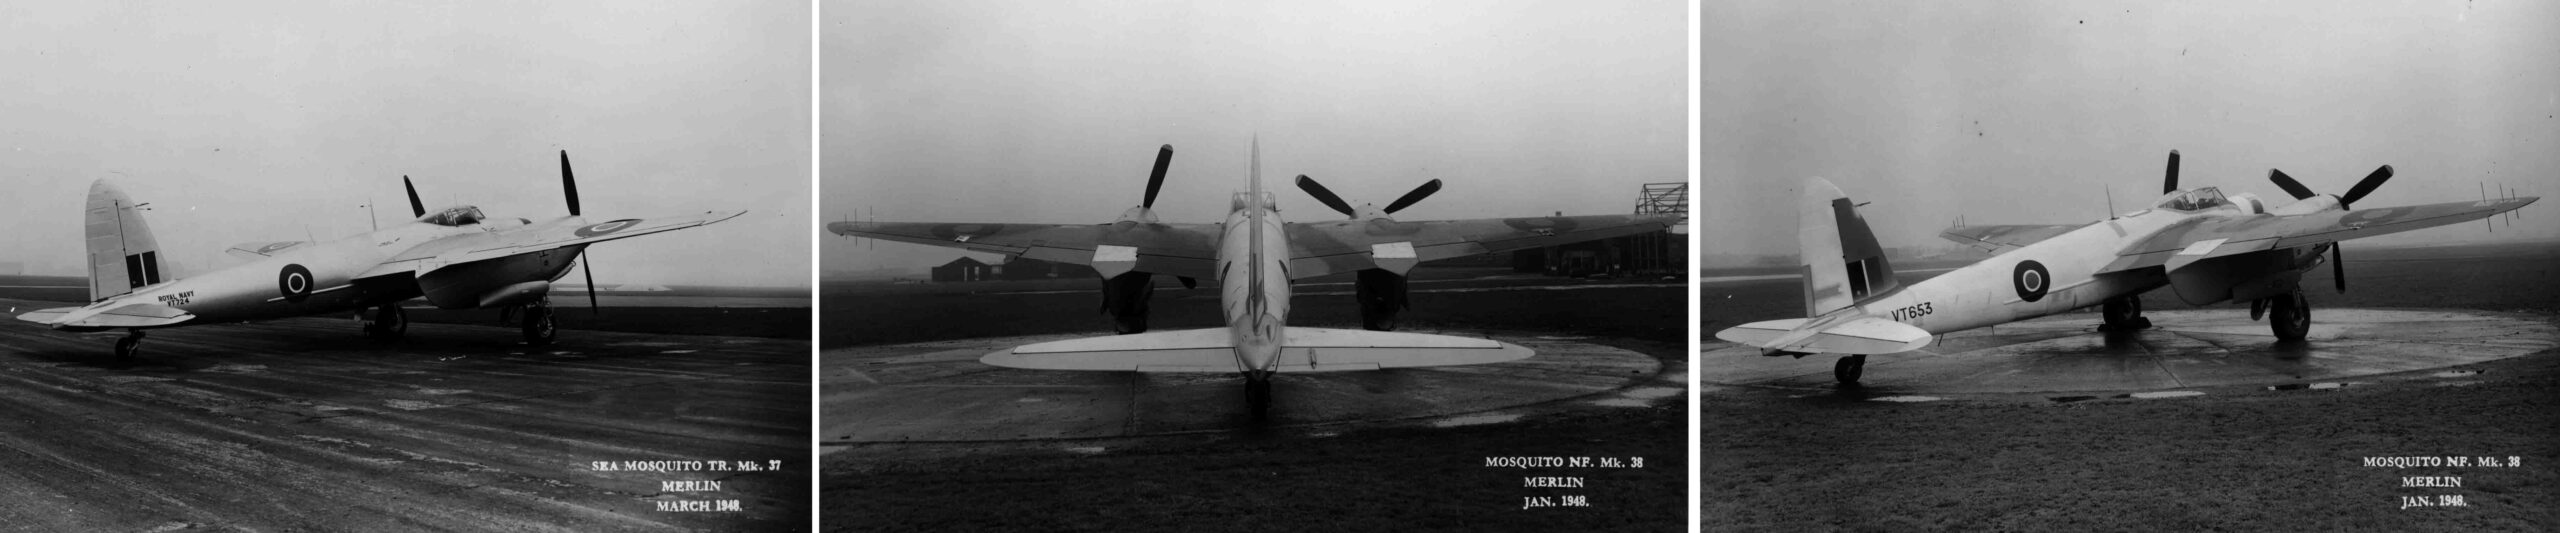 A Mosquito NF Mk 38 and a Mosquito NF XII